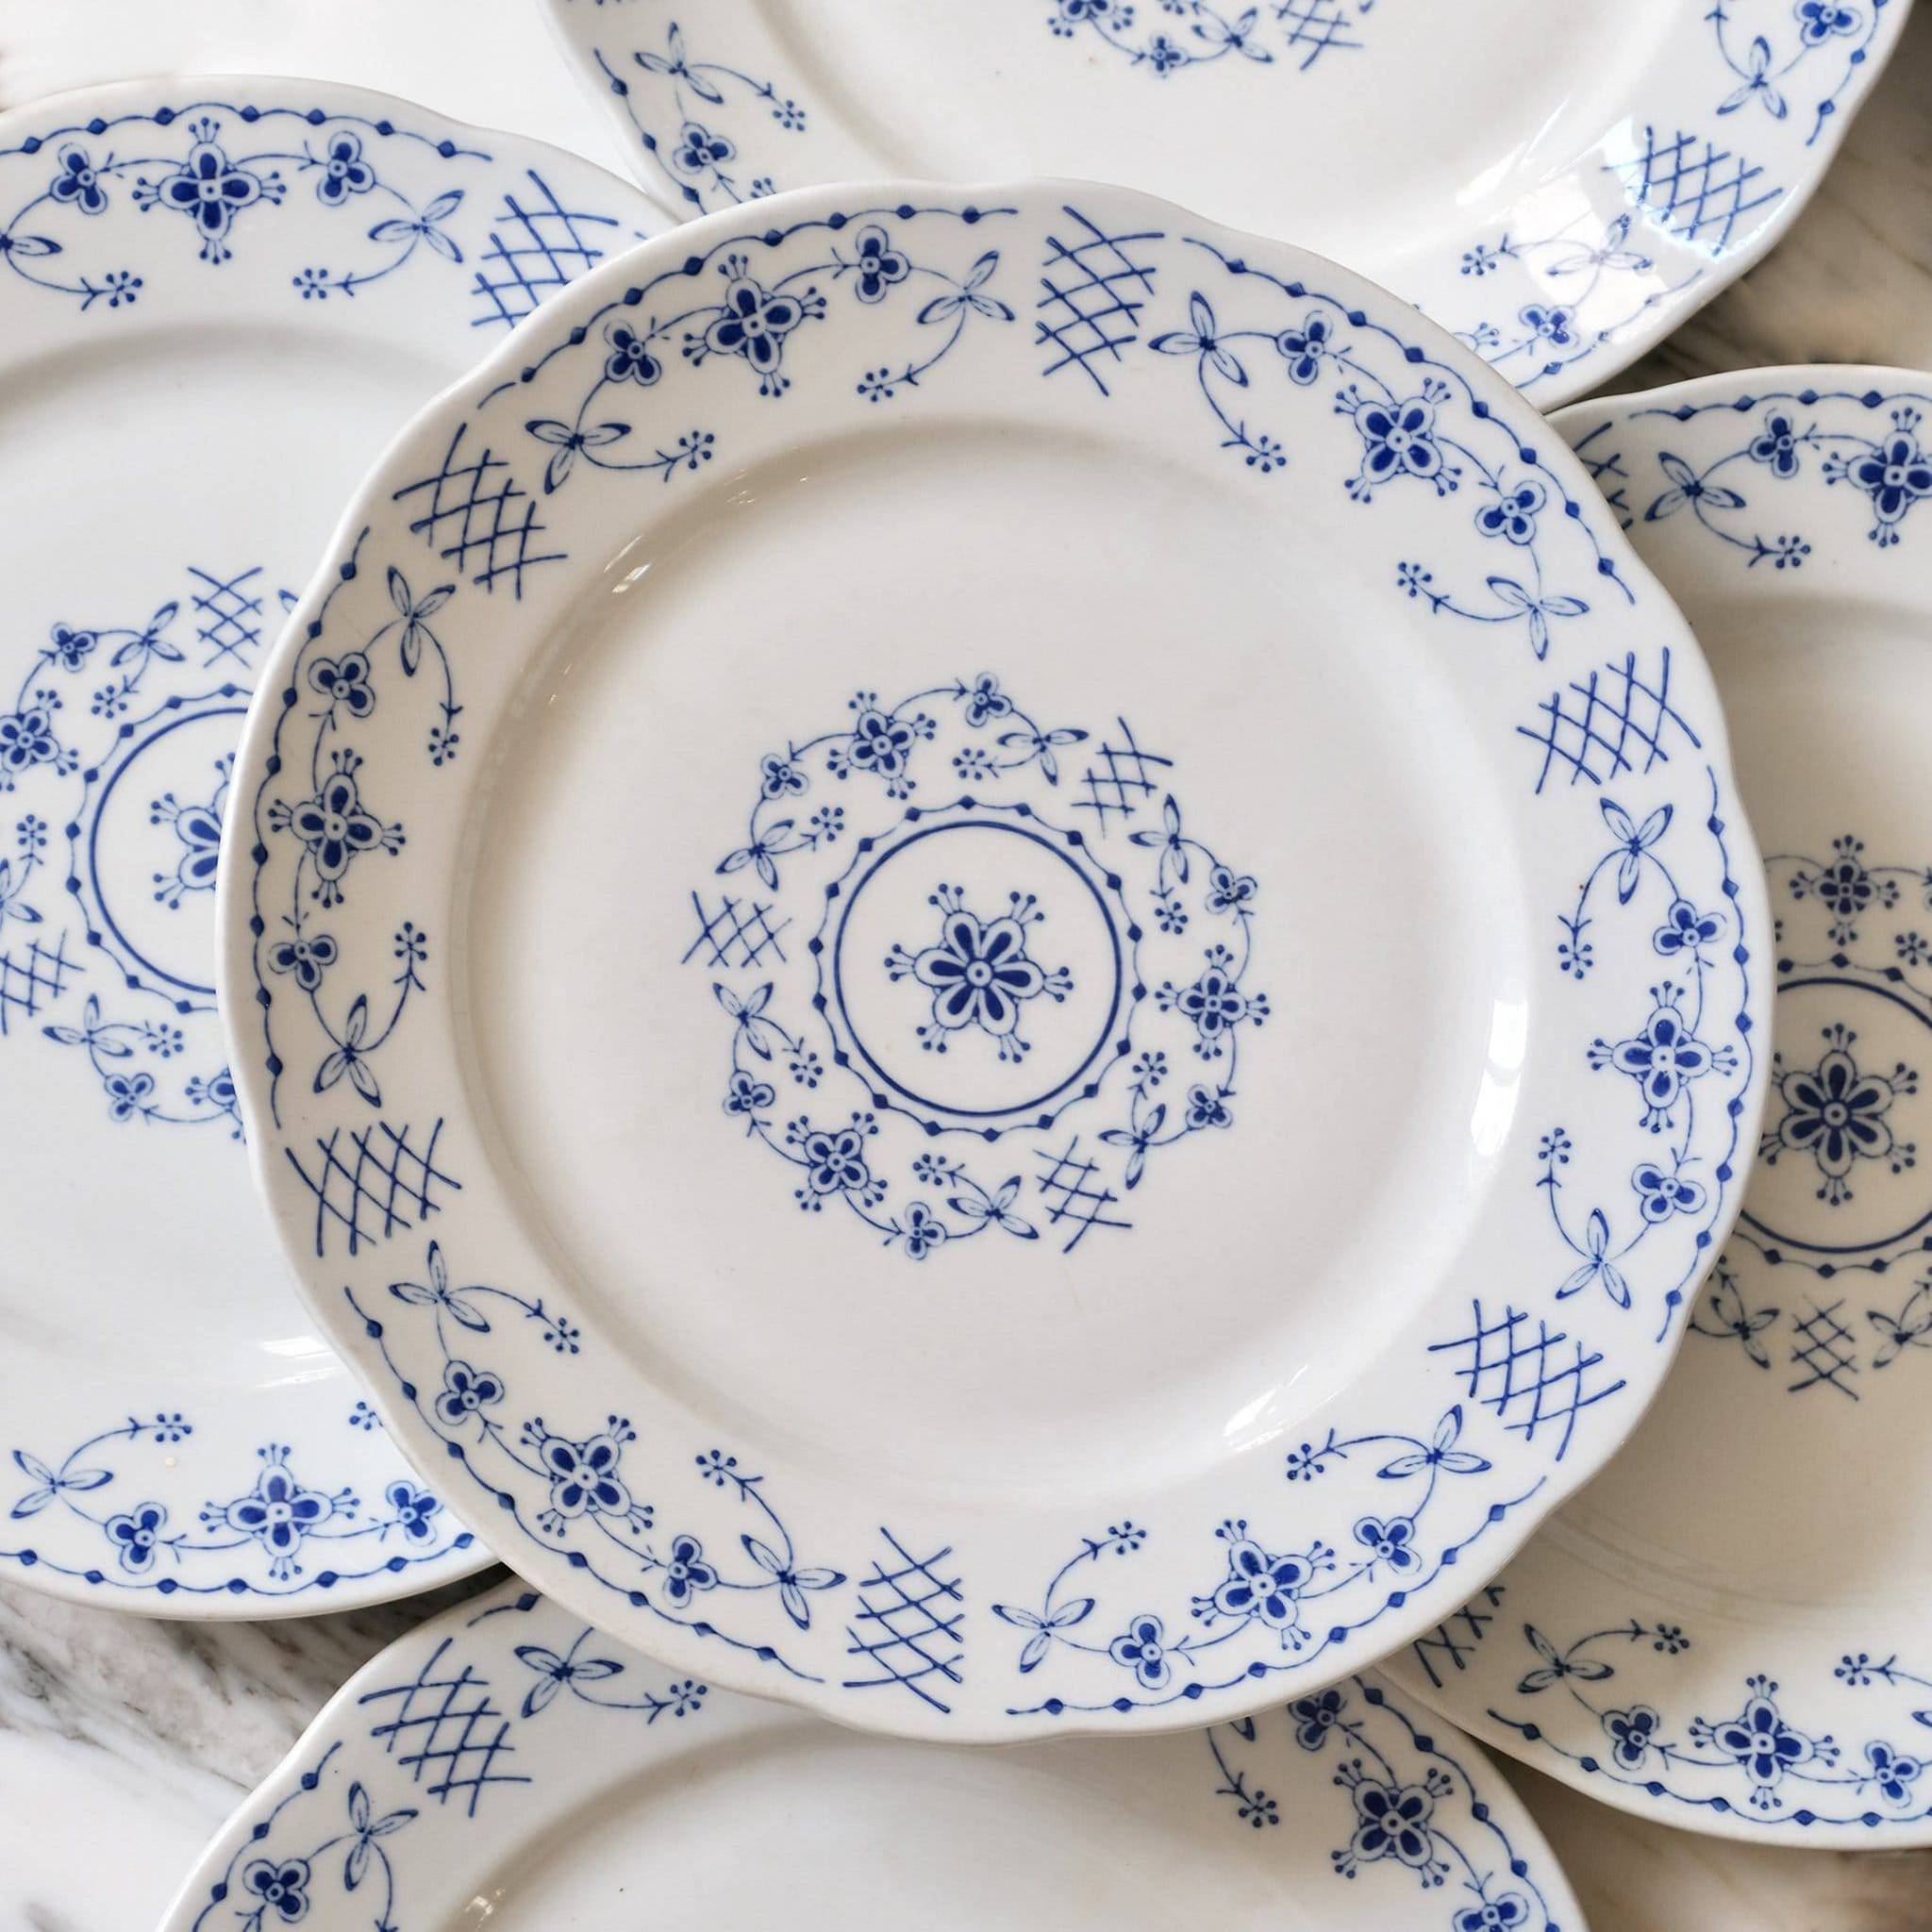 Francophile gift ideas blue and white dinner plates